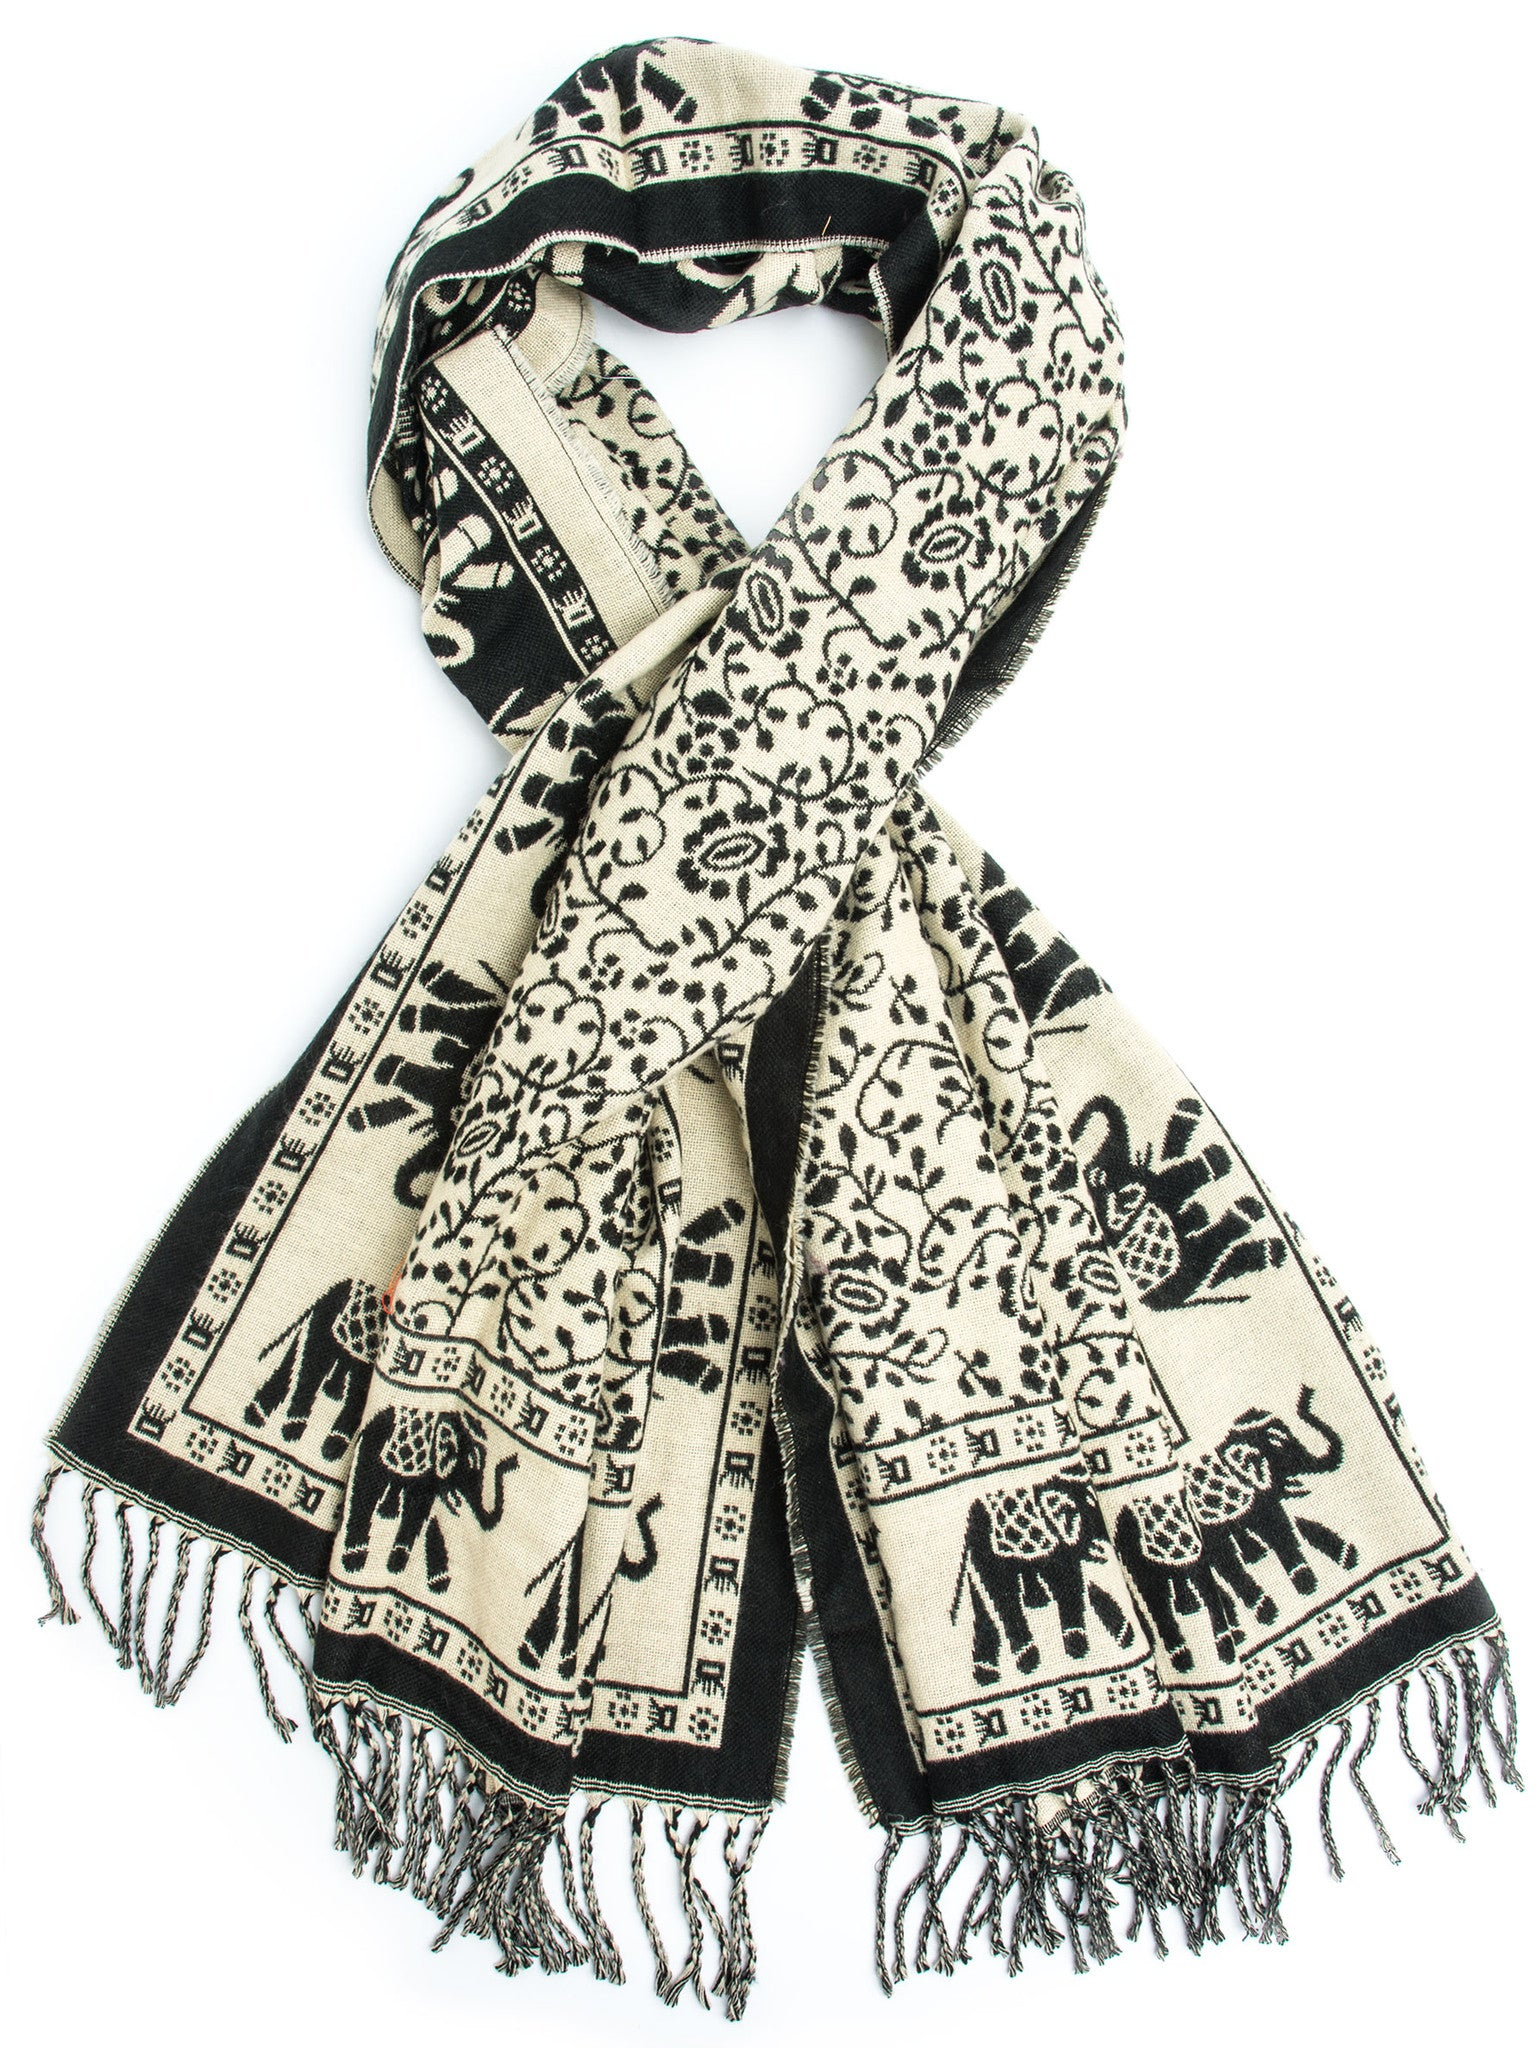 Scarves - Hathi Winter Blanket Scarf, Woven Indian Elephant Design -(Black/Cream) Bohomonde  - 1